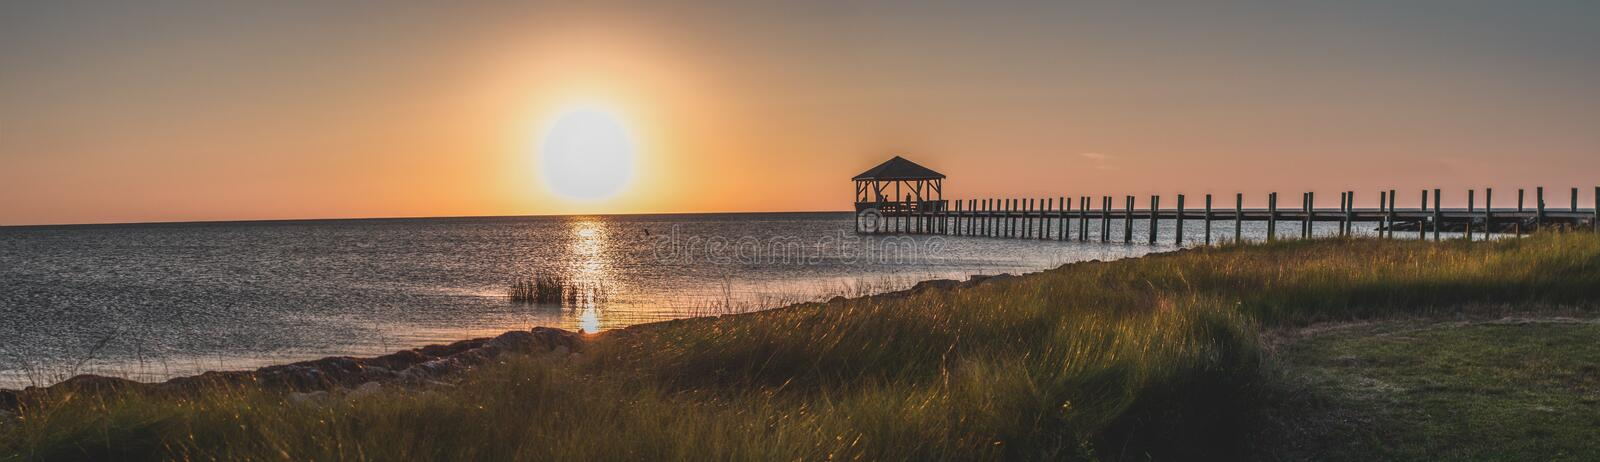 Beautiful panoramic shot of the wooden dock taken at golden hour at the beach royalty free stock image